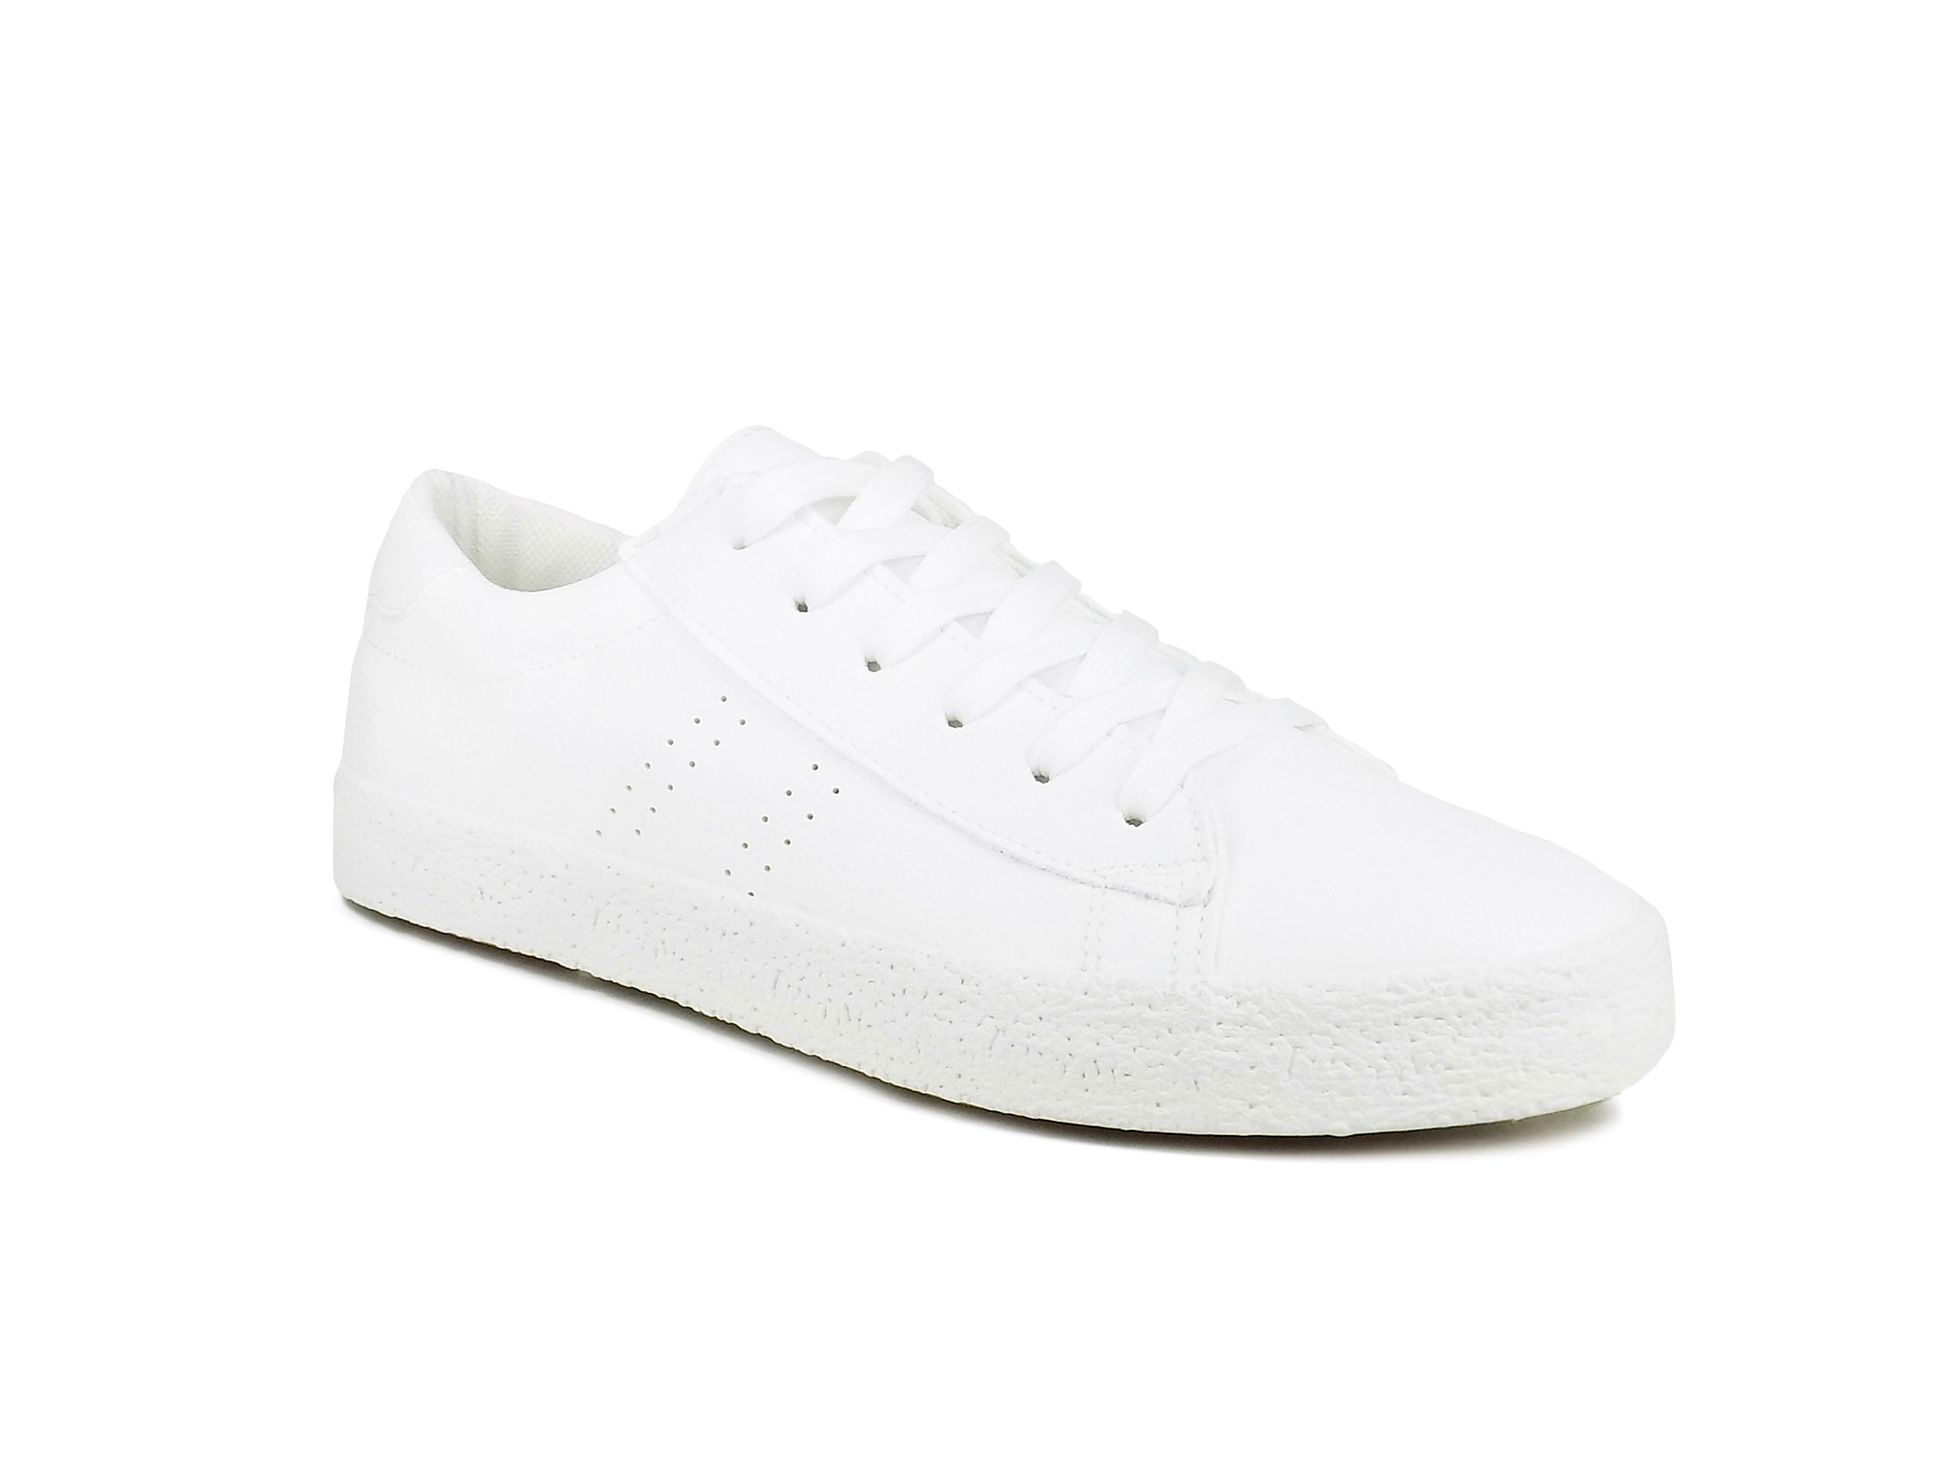 Ripley Nebraska Lifestyle White Casual Shoes